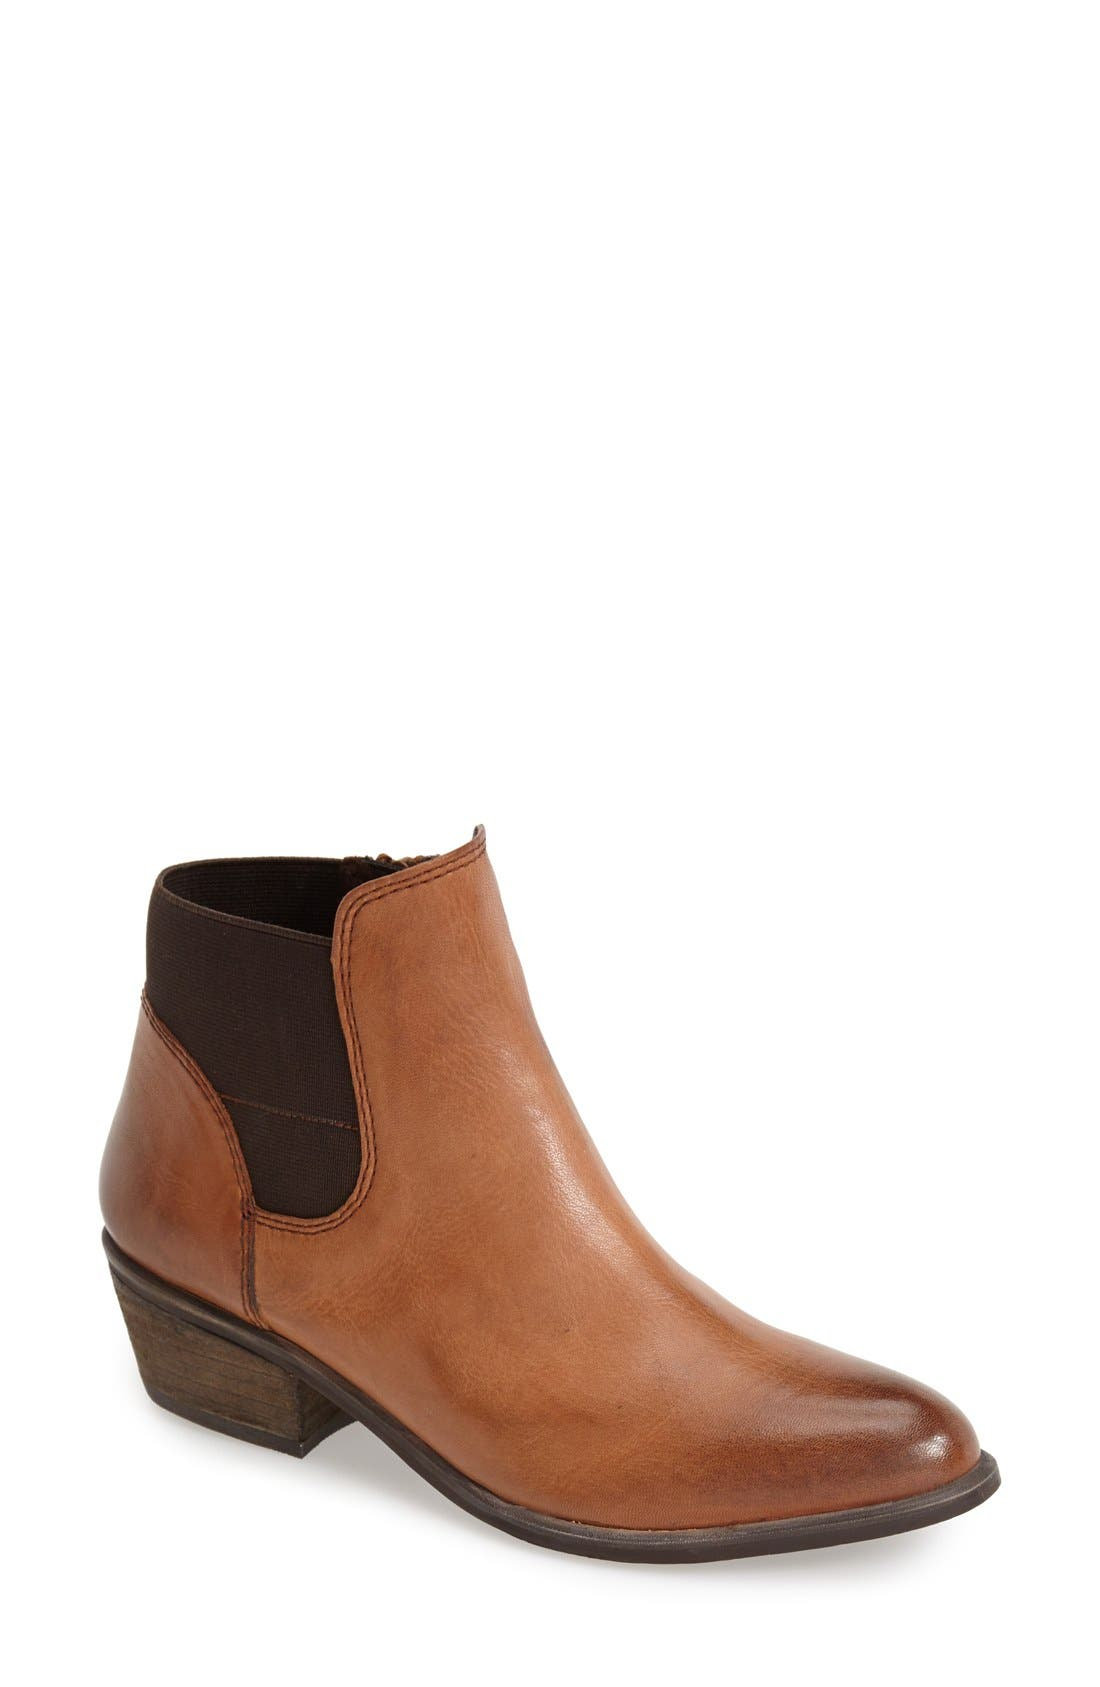 Main Image - Steve Madden 'Rozamare' Leather Ankle Bootie (Women)